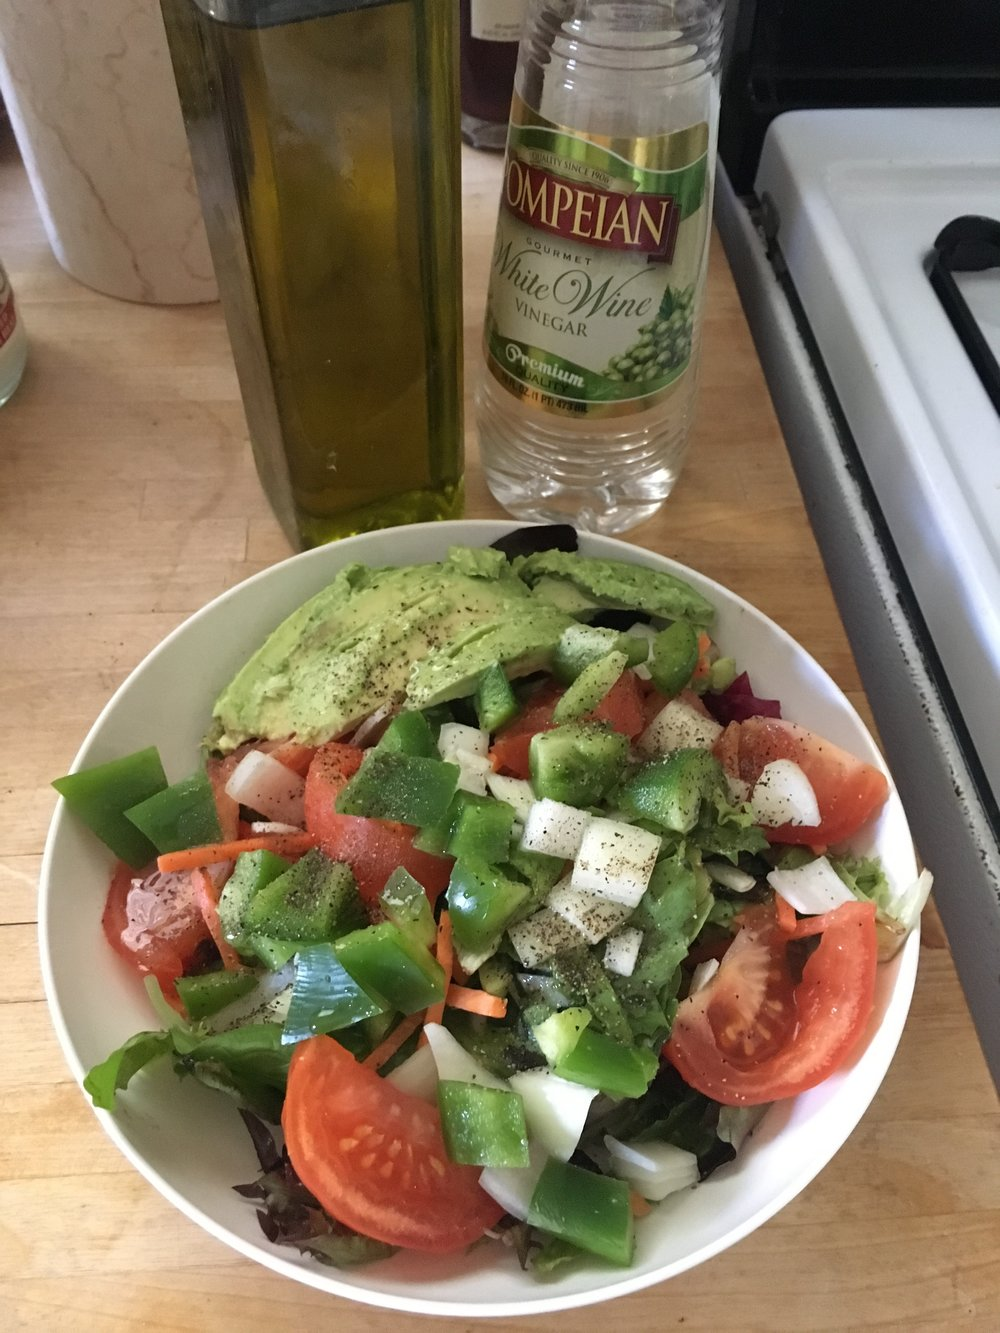 Oil & Vinegar avocado salad